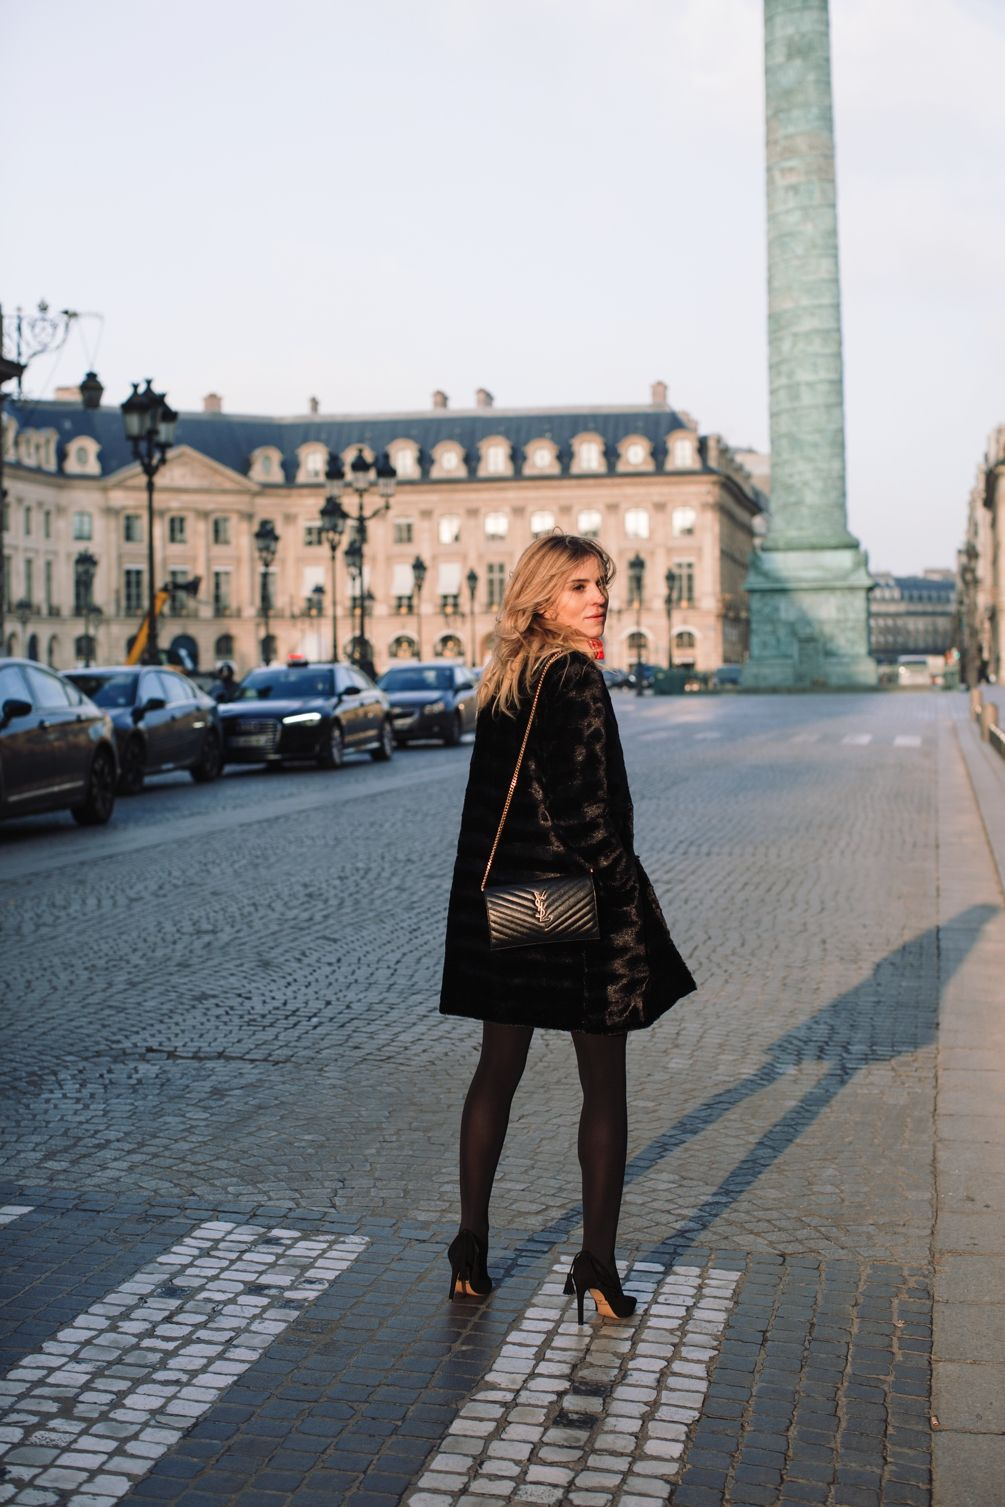 Look of The Day from Paris | Make Life Easier